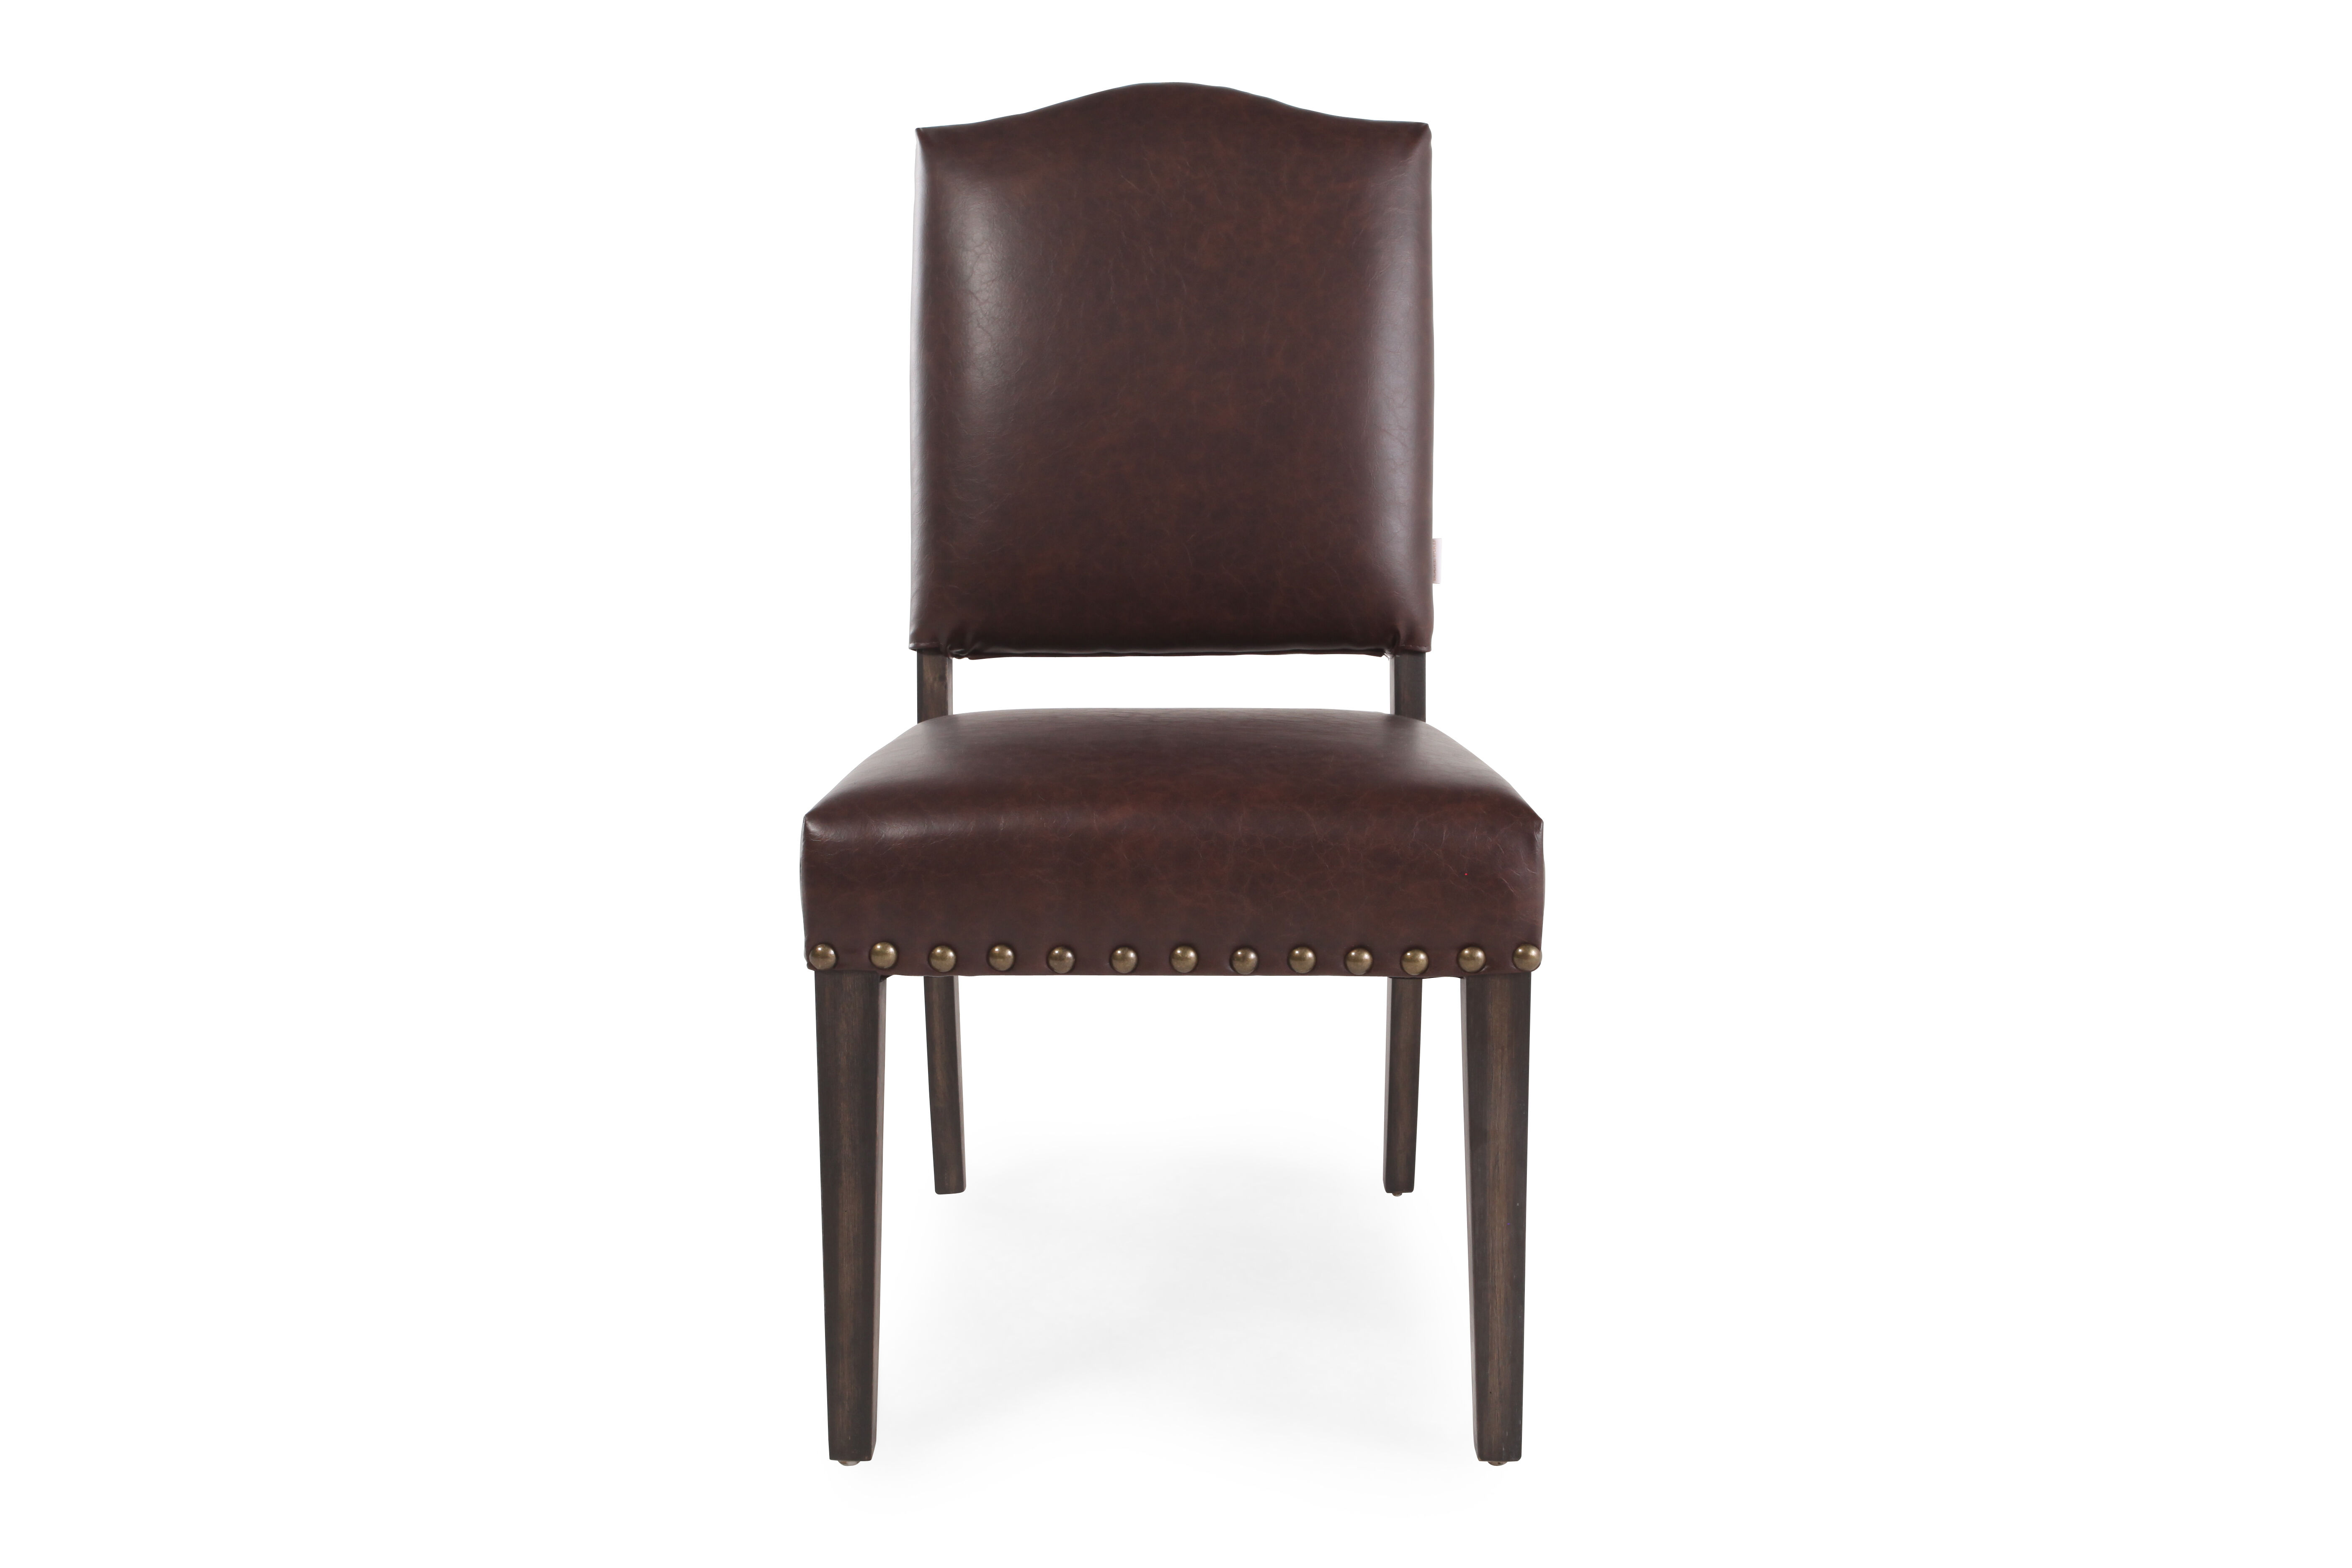 Arched Back 39 Dining Chair in Dark Brown  Mathis